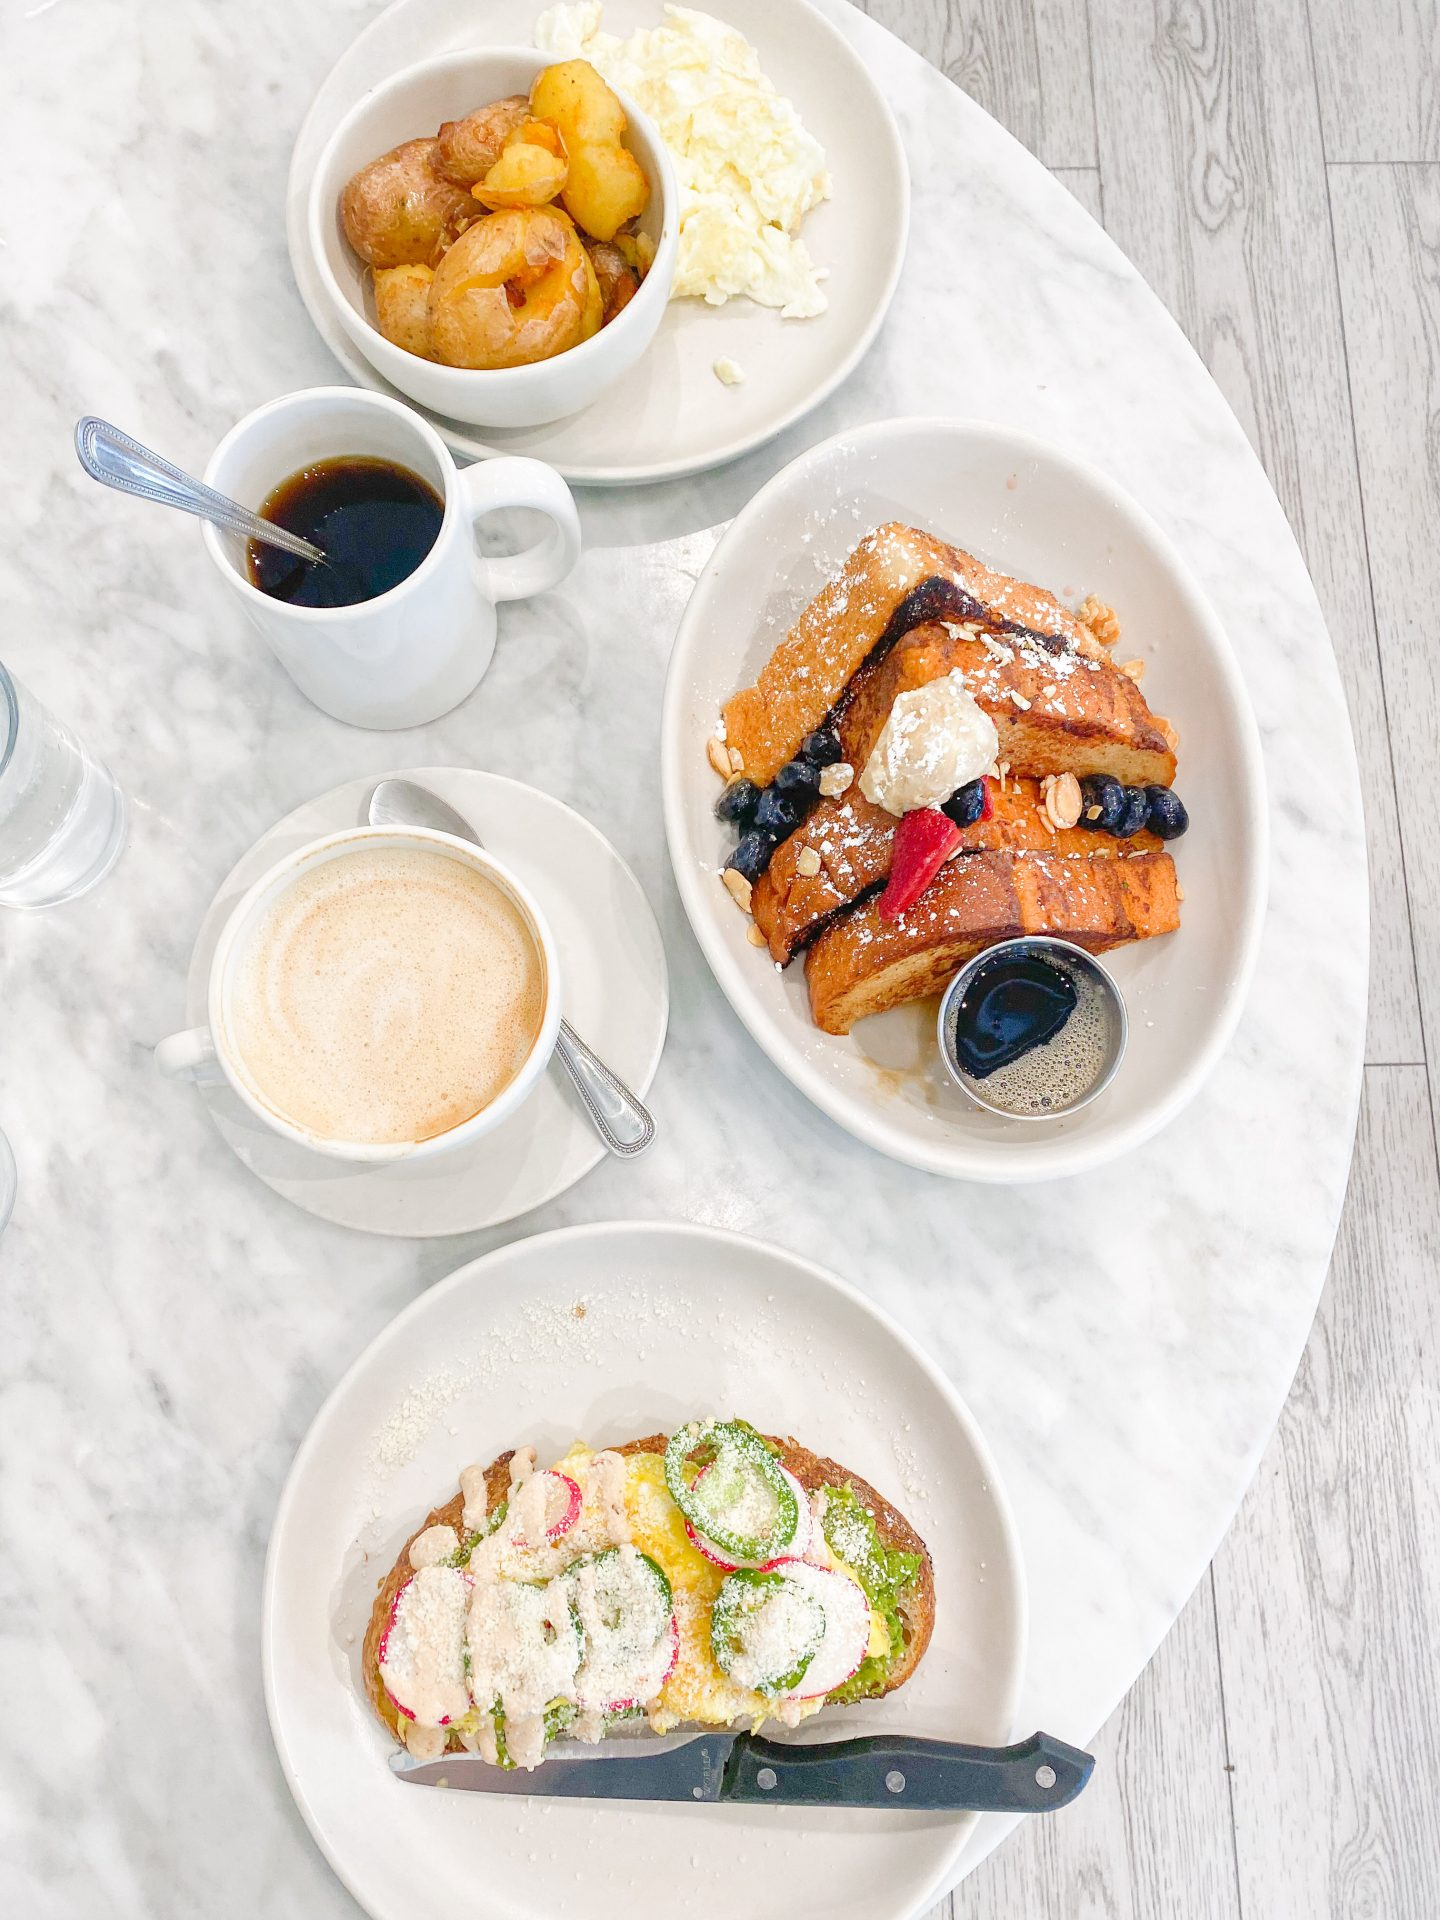 Prep and Pastry, Breakfast in Scottsdale Arizona, Ultimate Travel Guide, Scottsdale AZ, Travel USA, Brunch Spots, Best Coffee Shops in Scottsdale, What to do in Scottsdale, Where to Eat in Scottsdale, travel blogger, photography